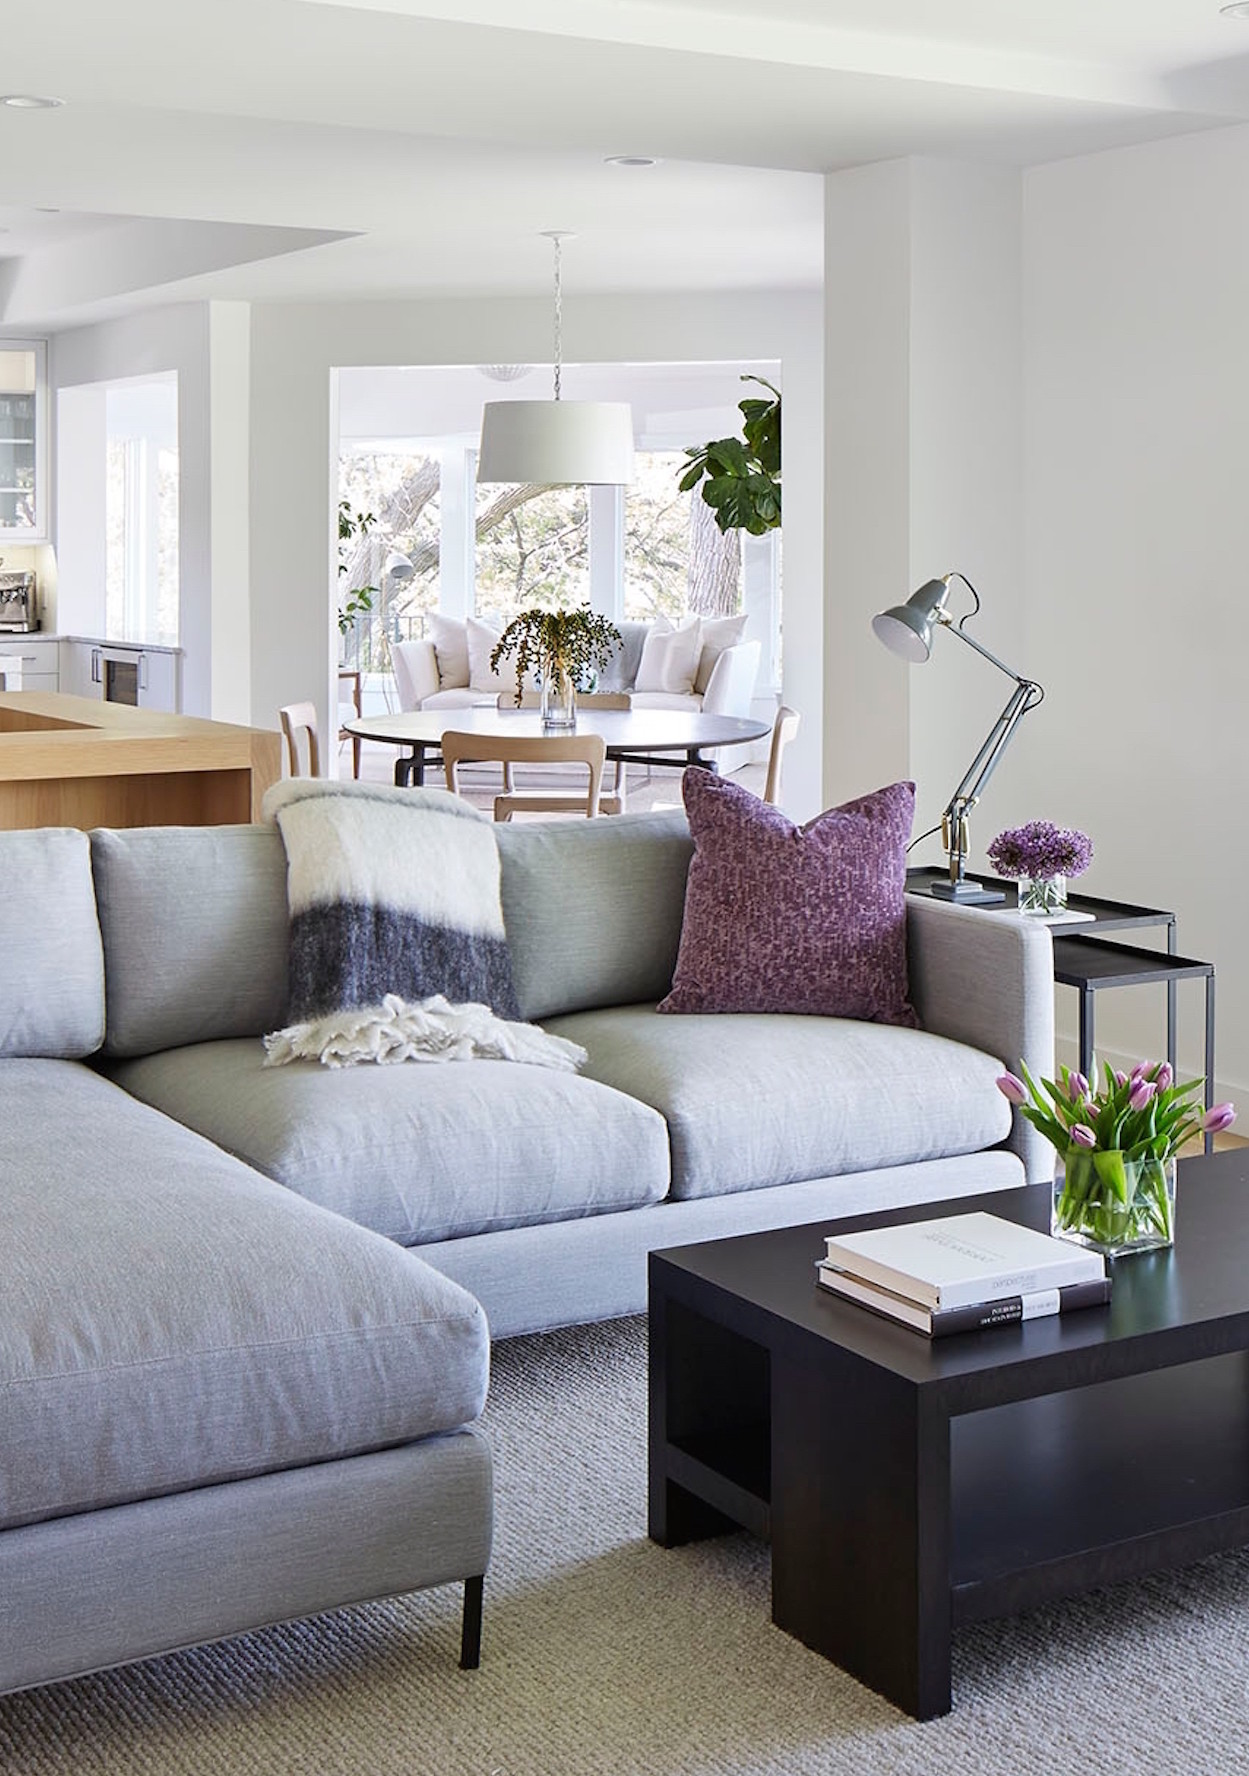 Design You Room: 10 Rules To Keep In Mind When Decorating A Living Room